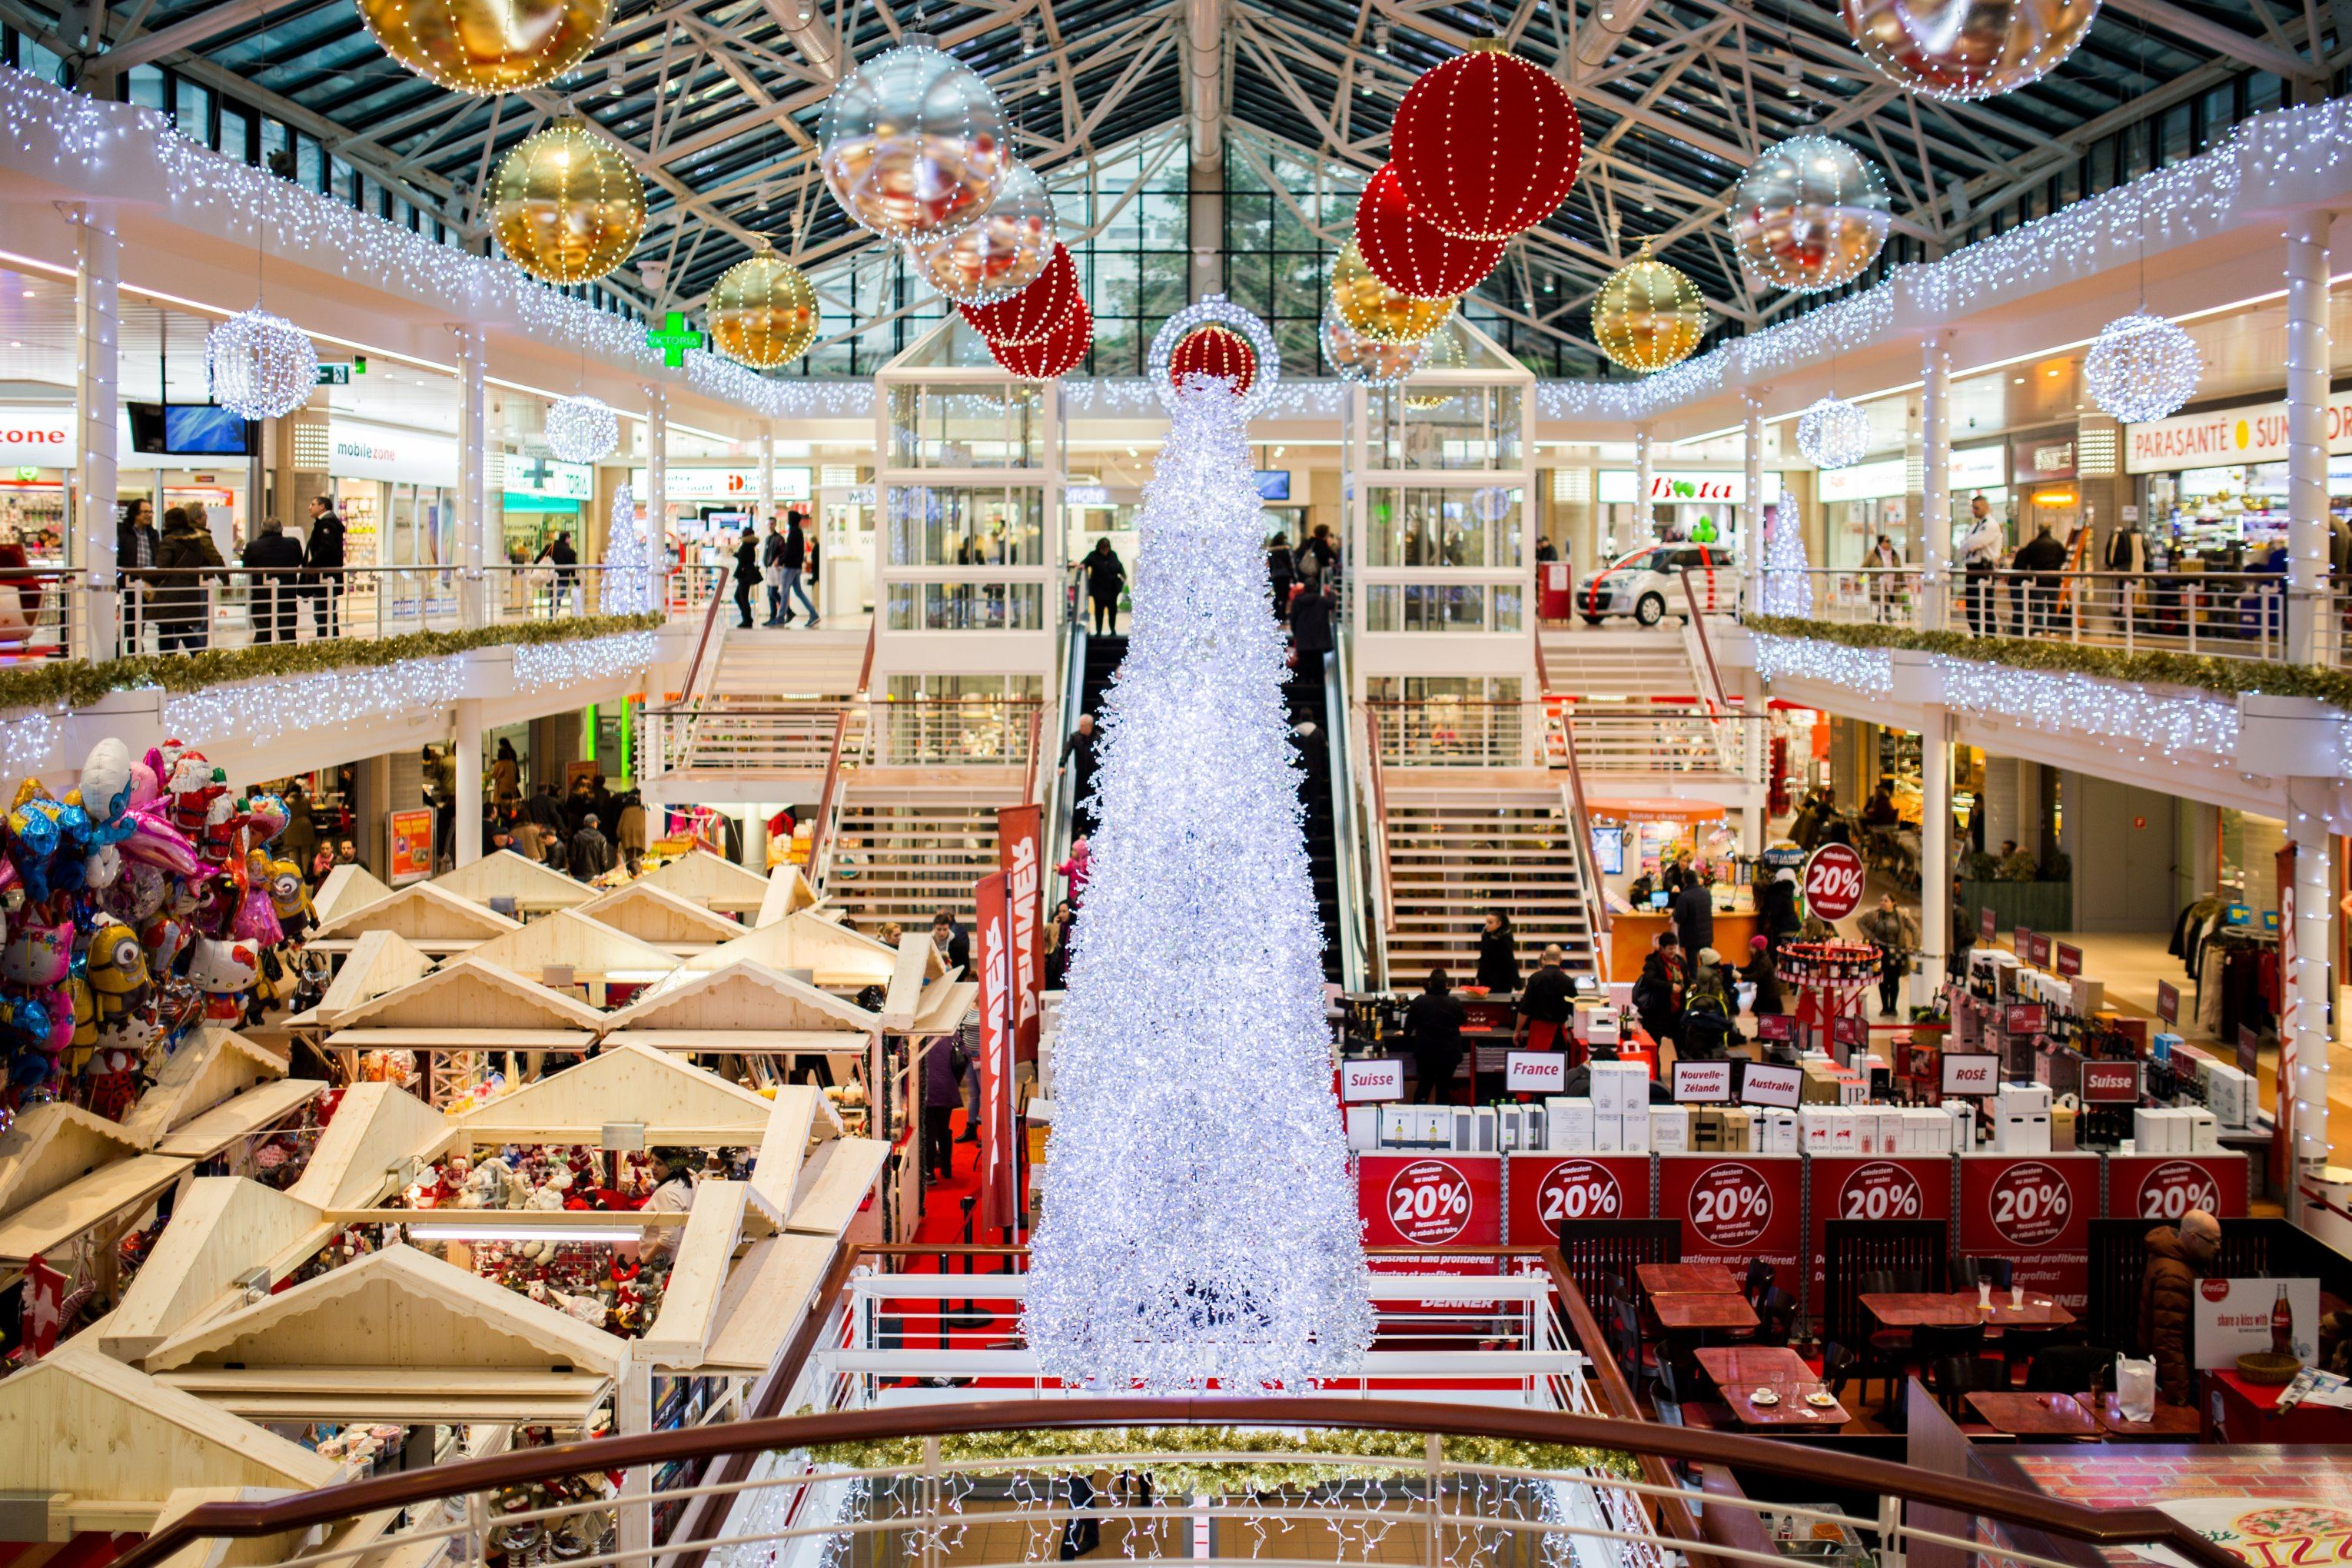 Business ready for holiday shopping season